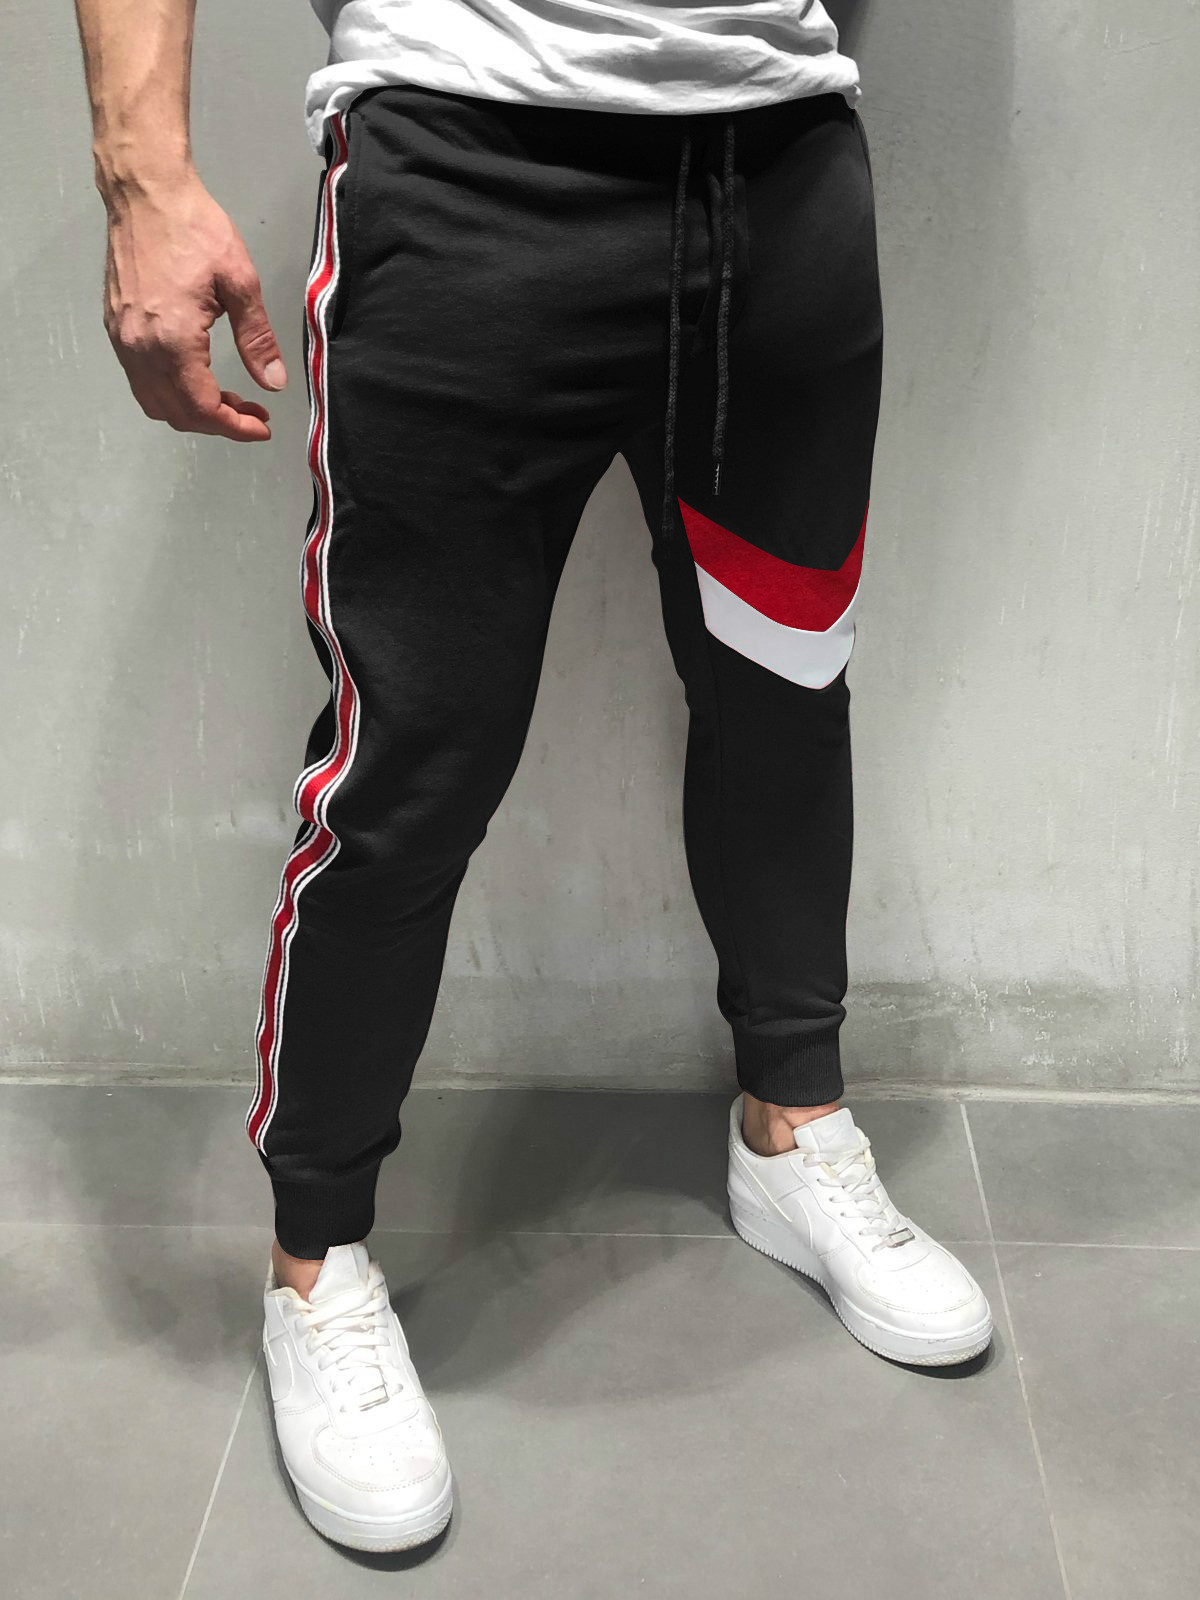 2019 Spring Men Pants Fashion Splice Men Pants Casual Slim Fit Mens Joggers Sweatpants Pantalon Homme Men Clothes